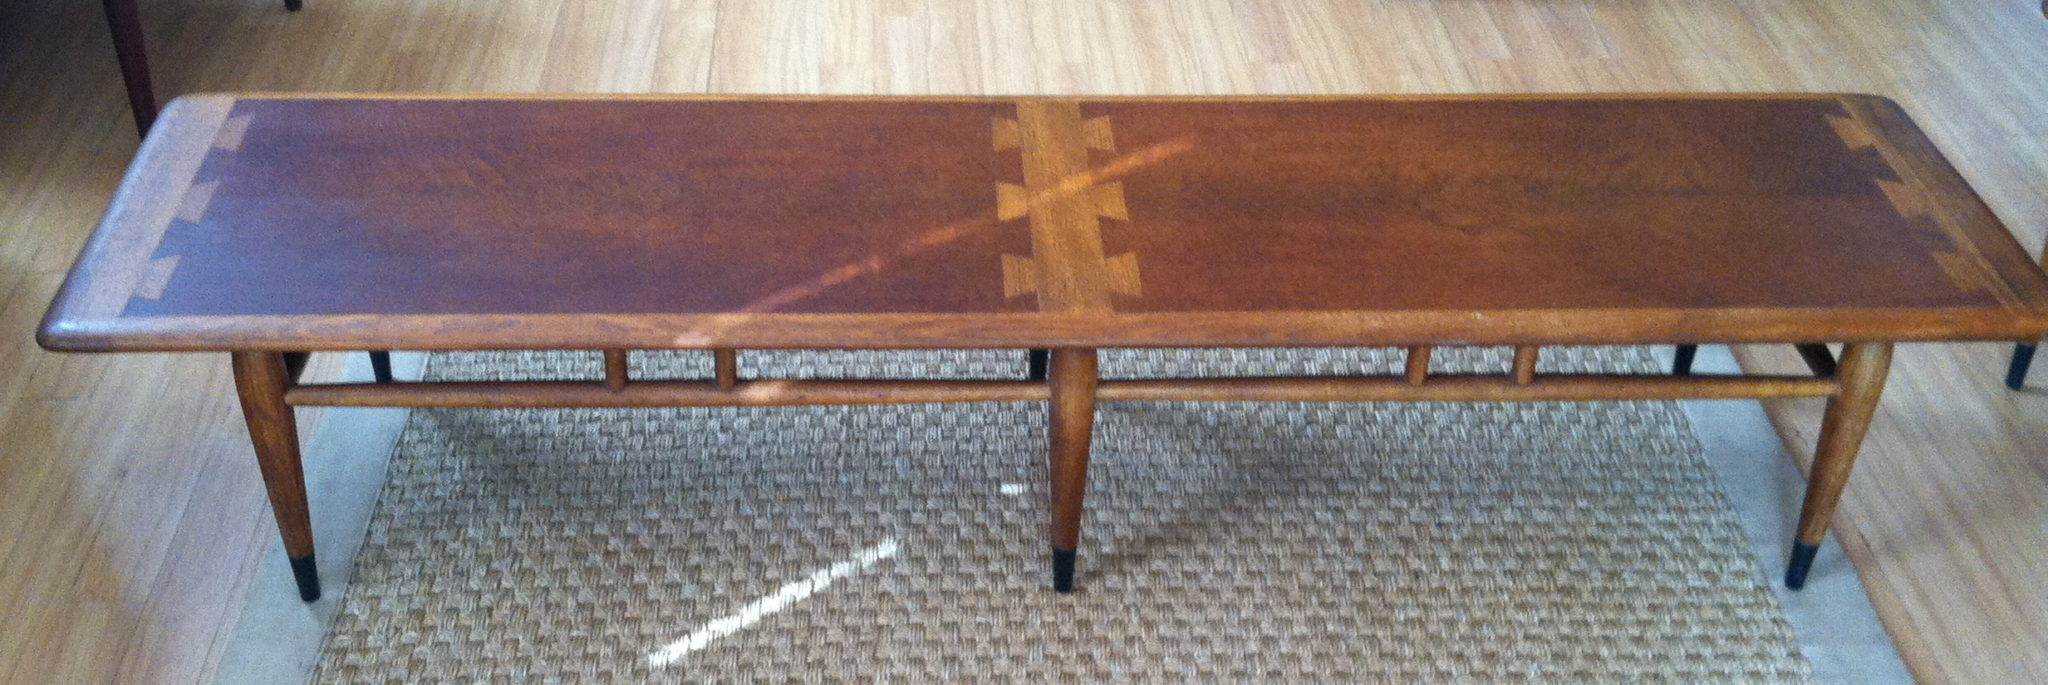 Lane-acclaim-bench-cocktail-coffee-table